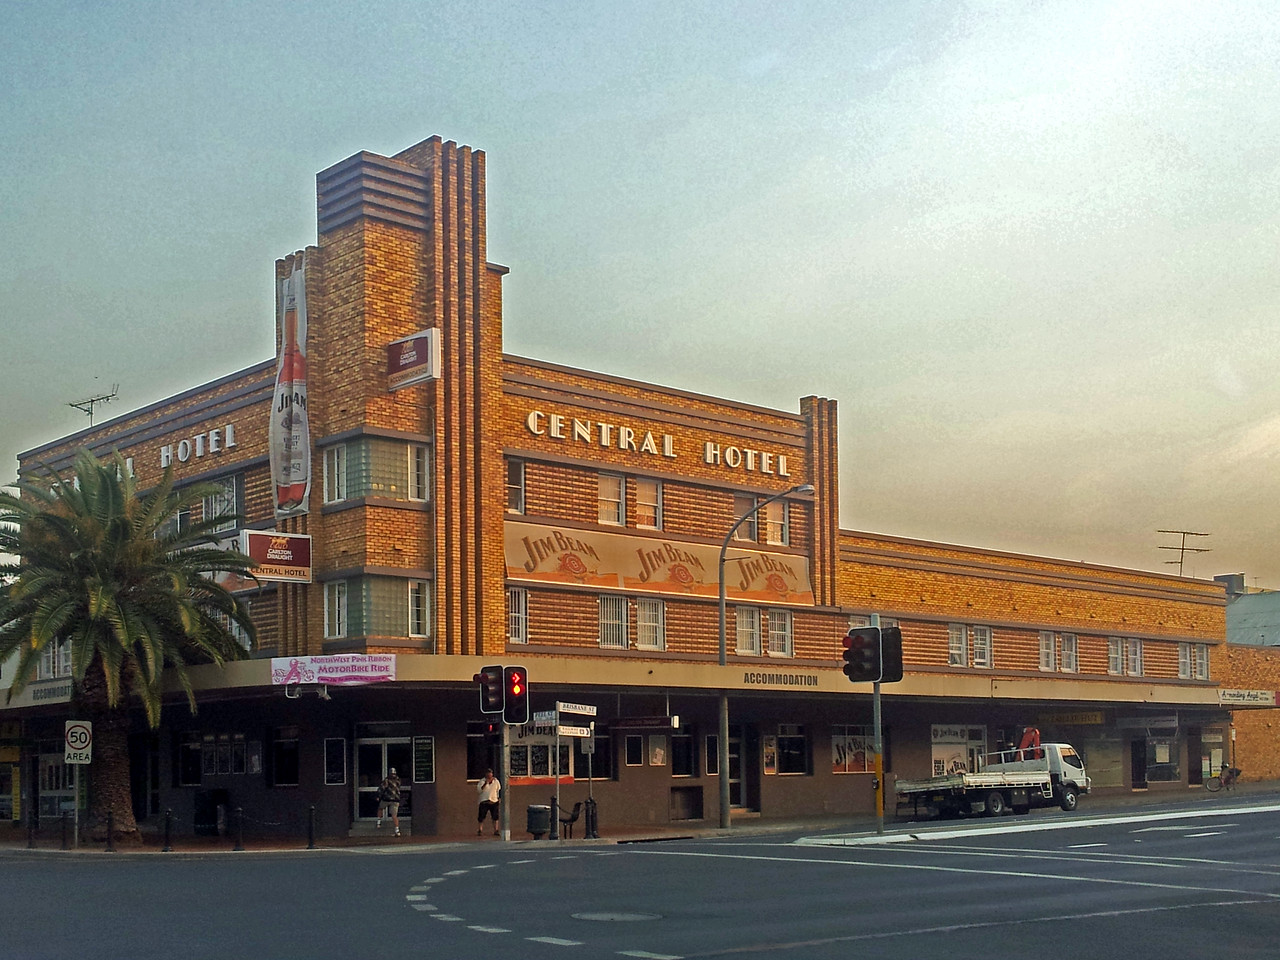 18 October 2013: Central Hotel, Peel Street, Tamworth, New South Wales.